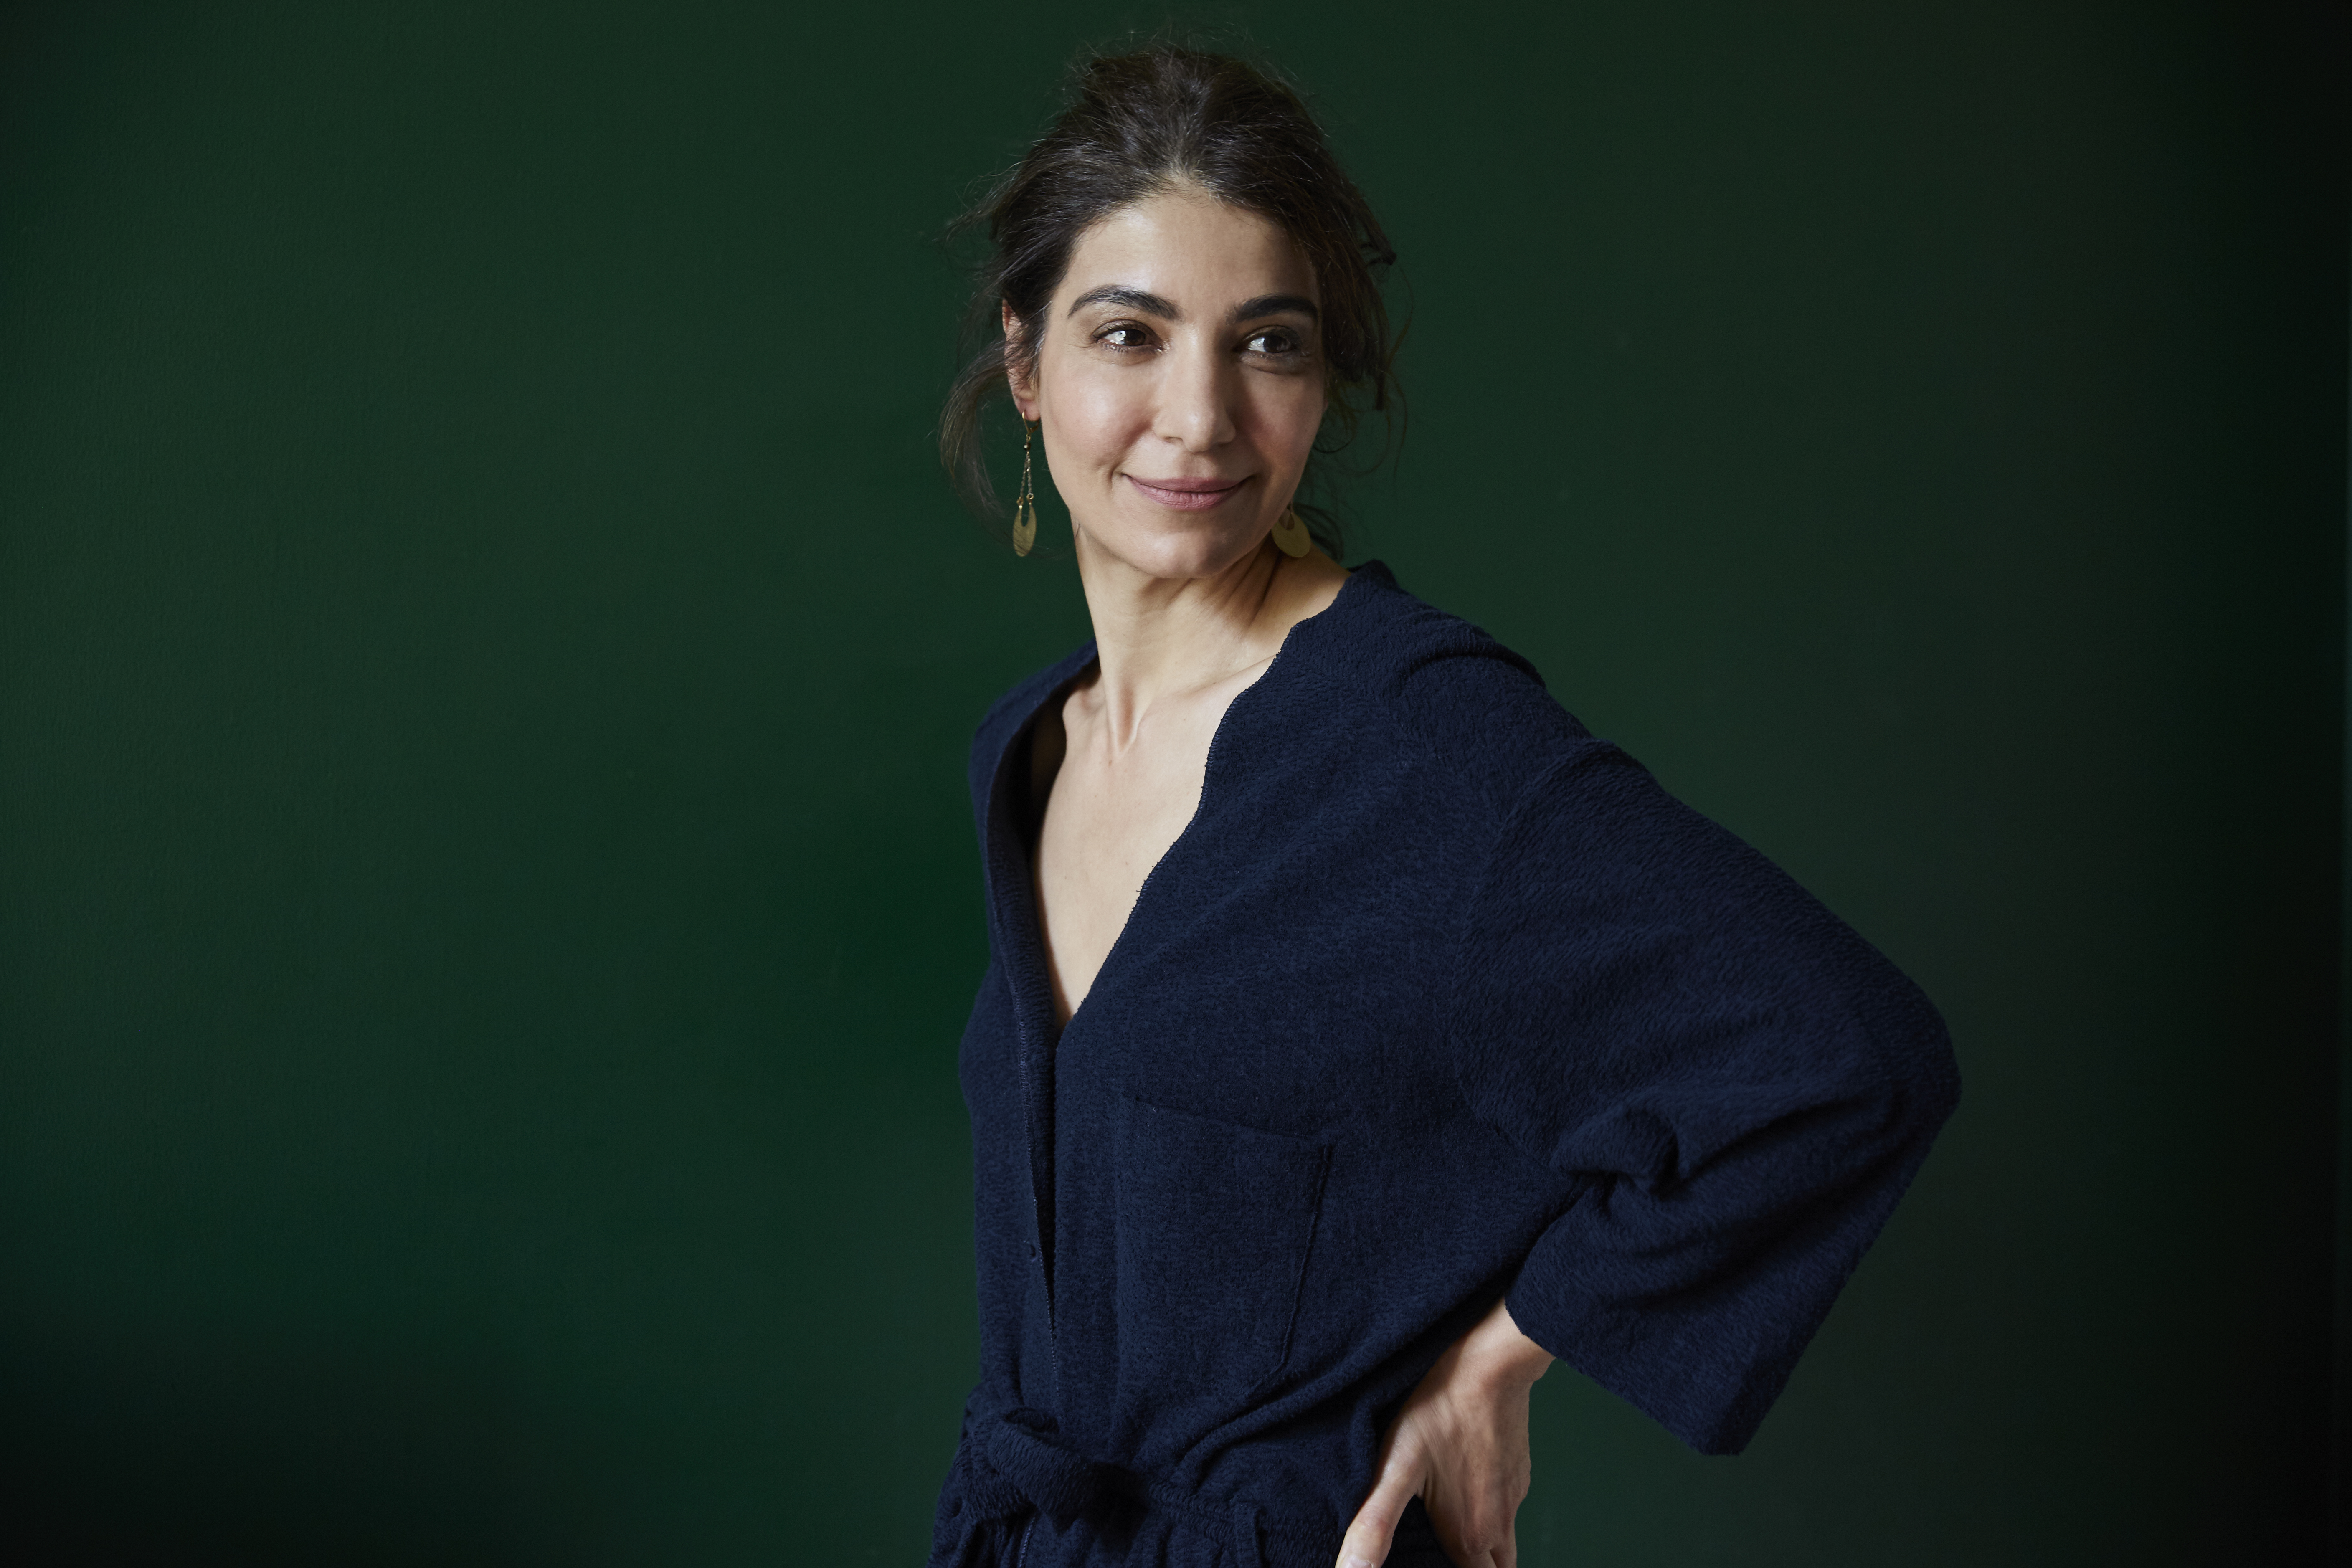 Eva Karayiannis is the Woman Behind one of the World's Most Charming Fashion Brands